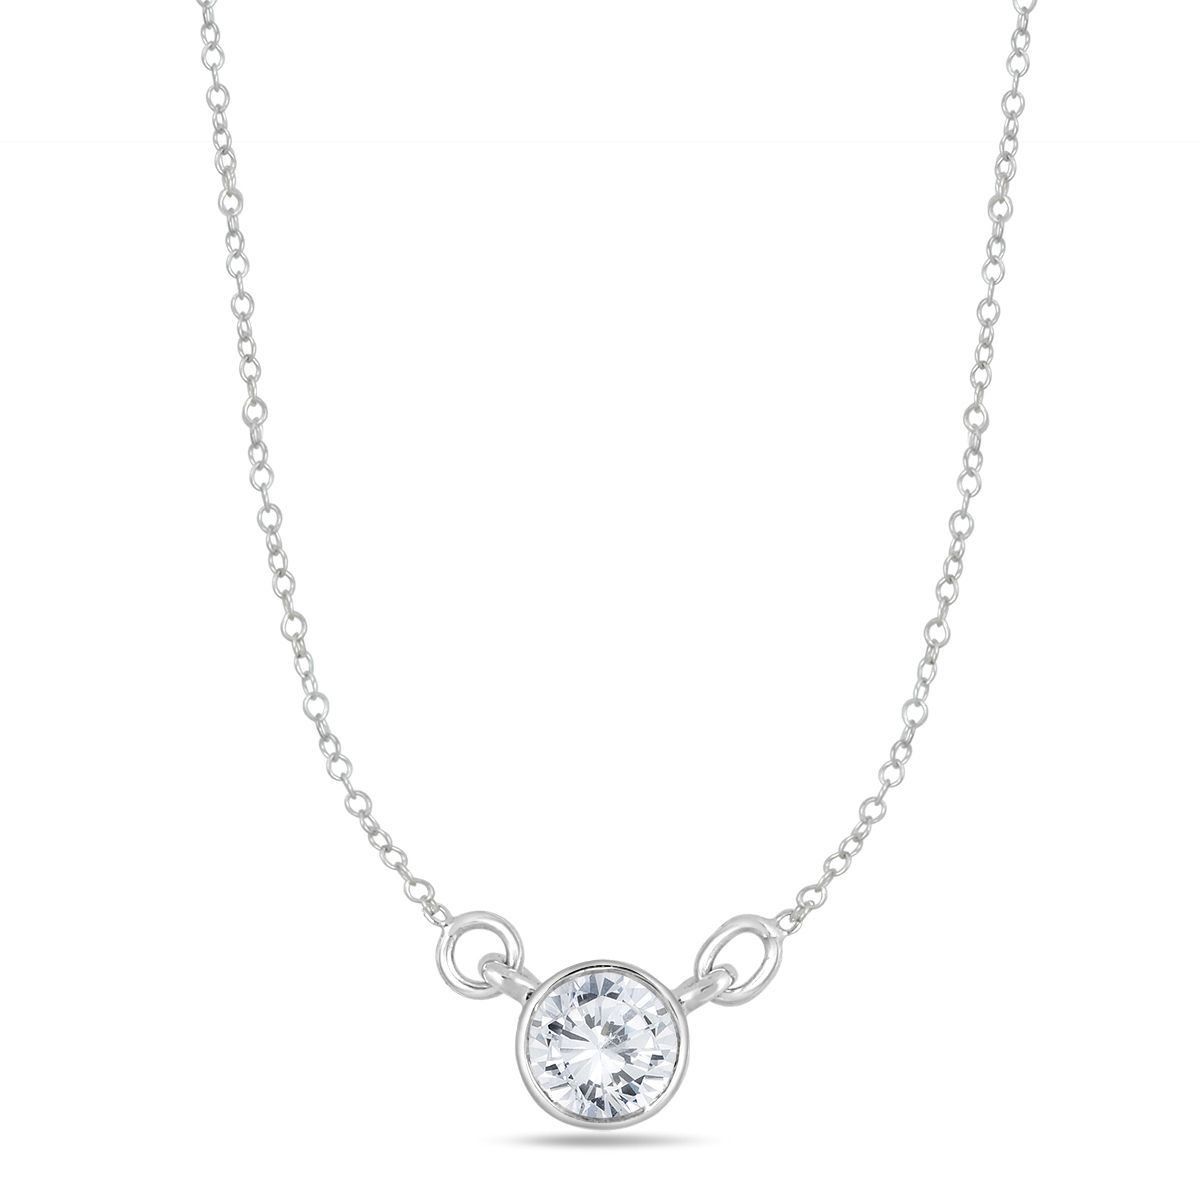 Marquee jewels k white gold ct tdw bezelset diamond solitaire